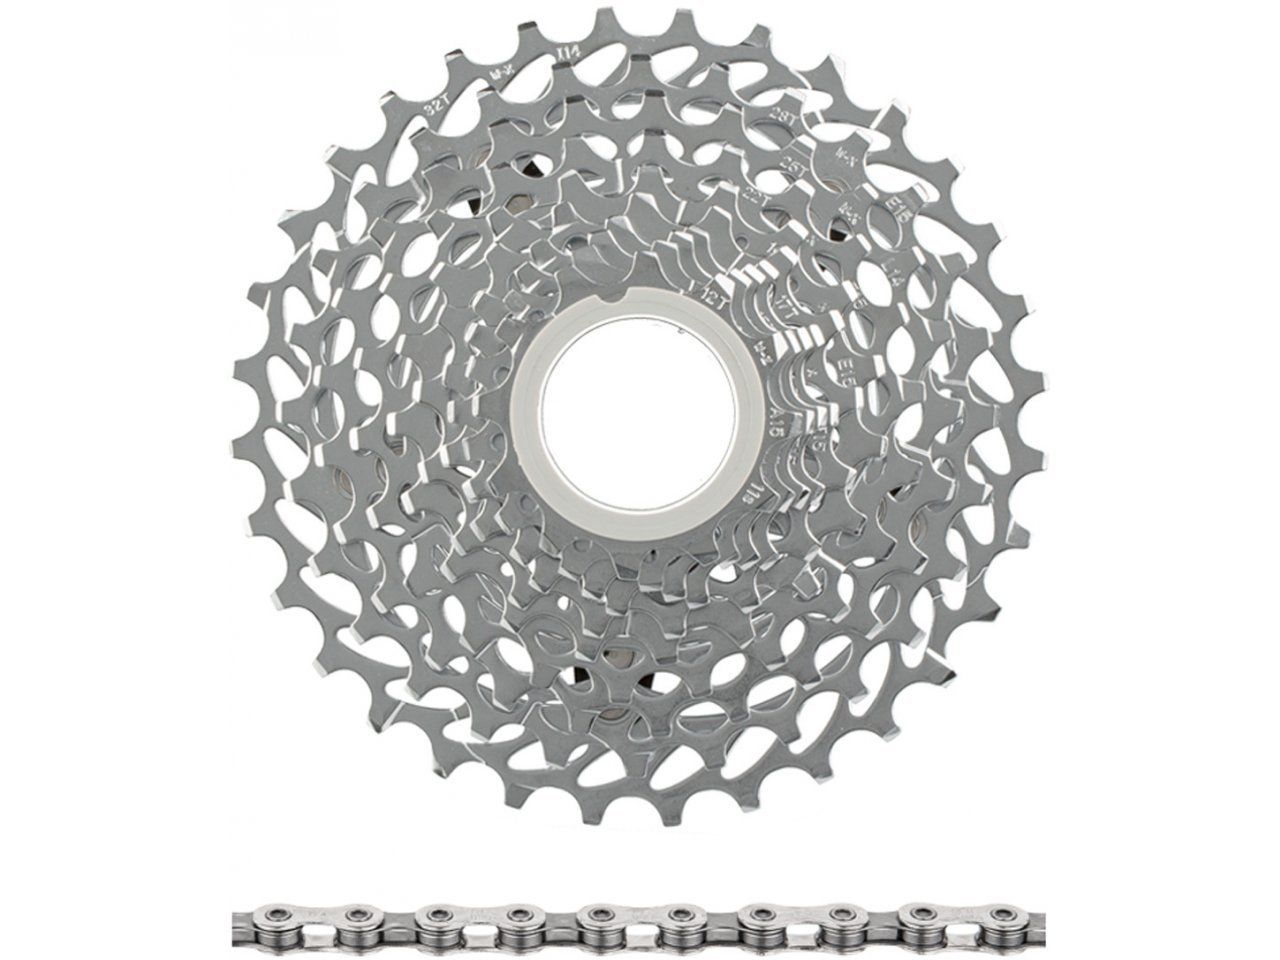 SRAM-Rival-PG-1130-Cassette-PC-1130-11-speed-Chain-Set-blast-silver-11-32-50097-251950-1550731492